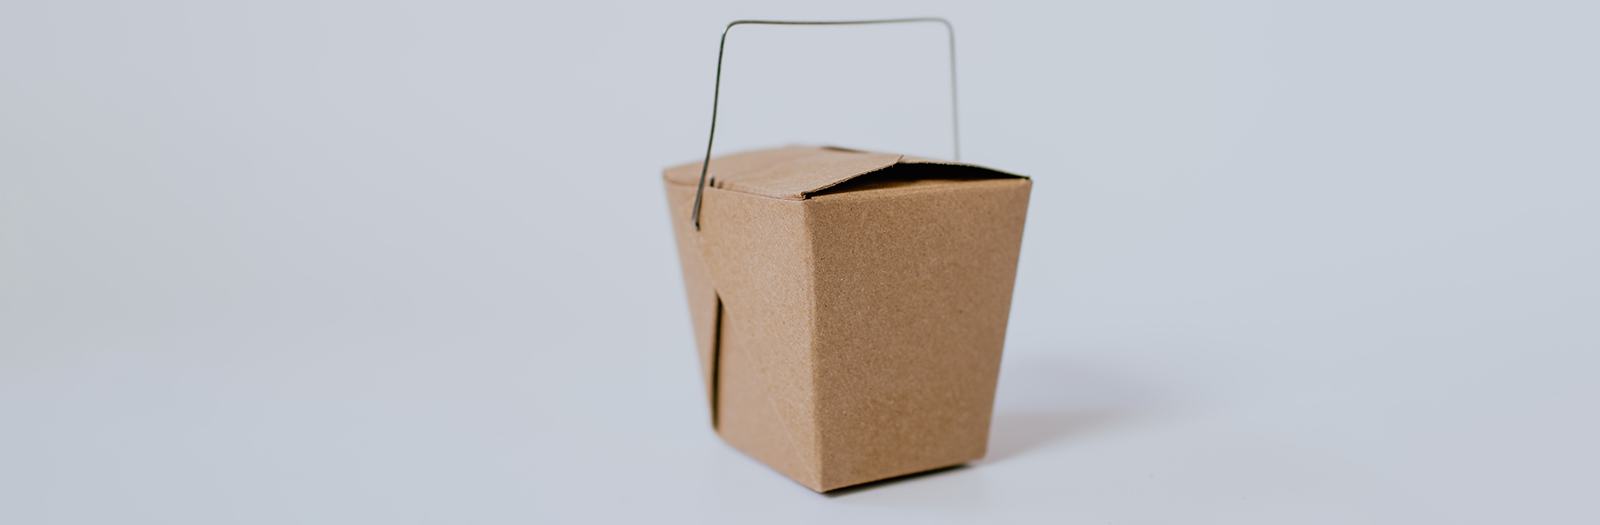 food takeout container